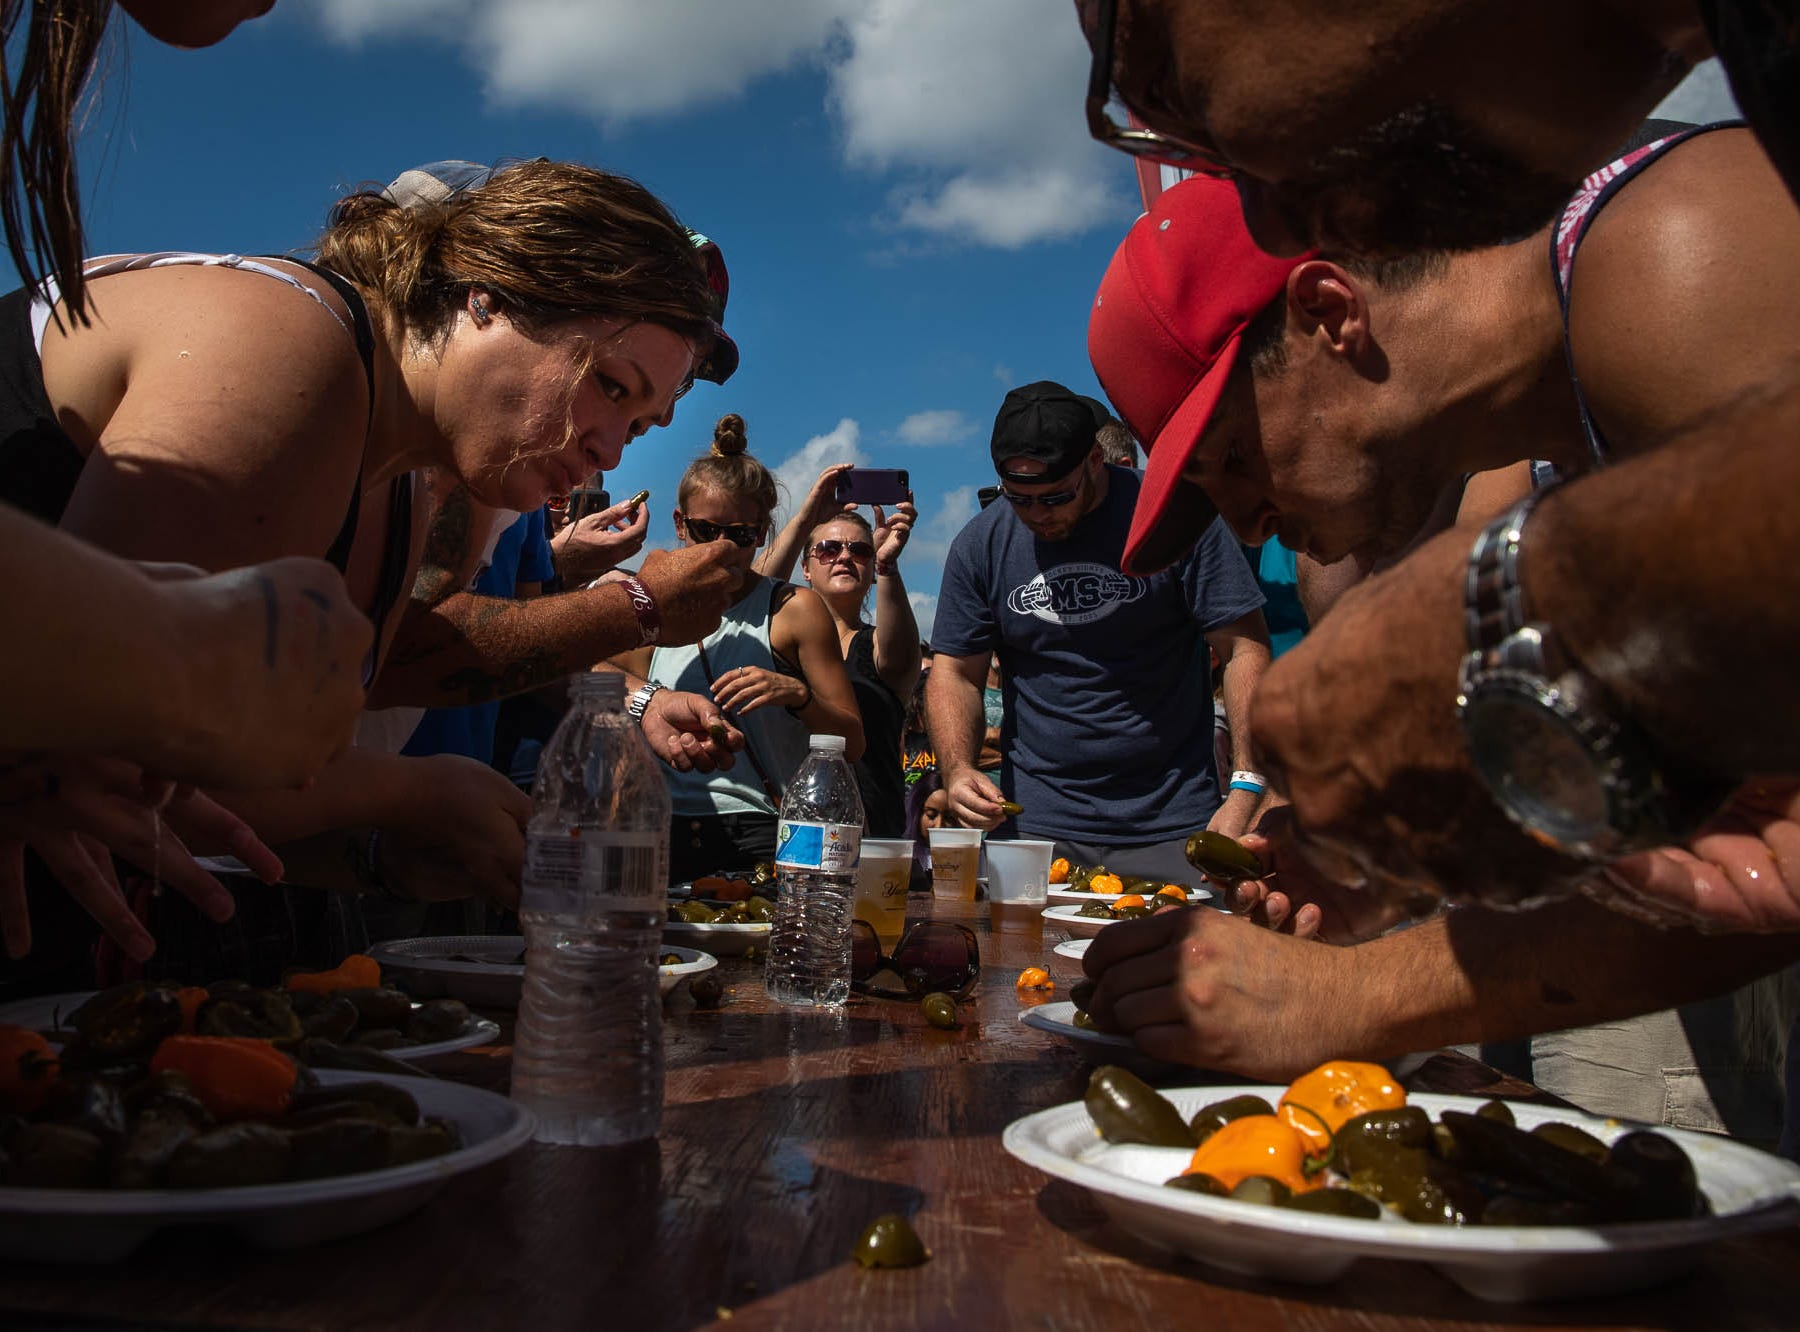 Contestants dig in during a jalapeño pepper-eating contest during the 23rd Annual Hanover Chili Cook Off, Sunday, Sept. 2, 2018, at Good Field in Hanover.